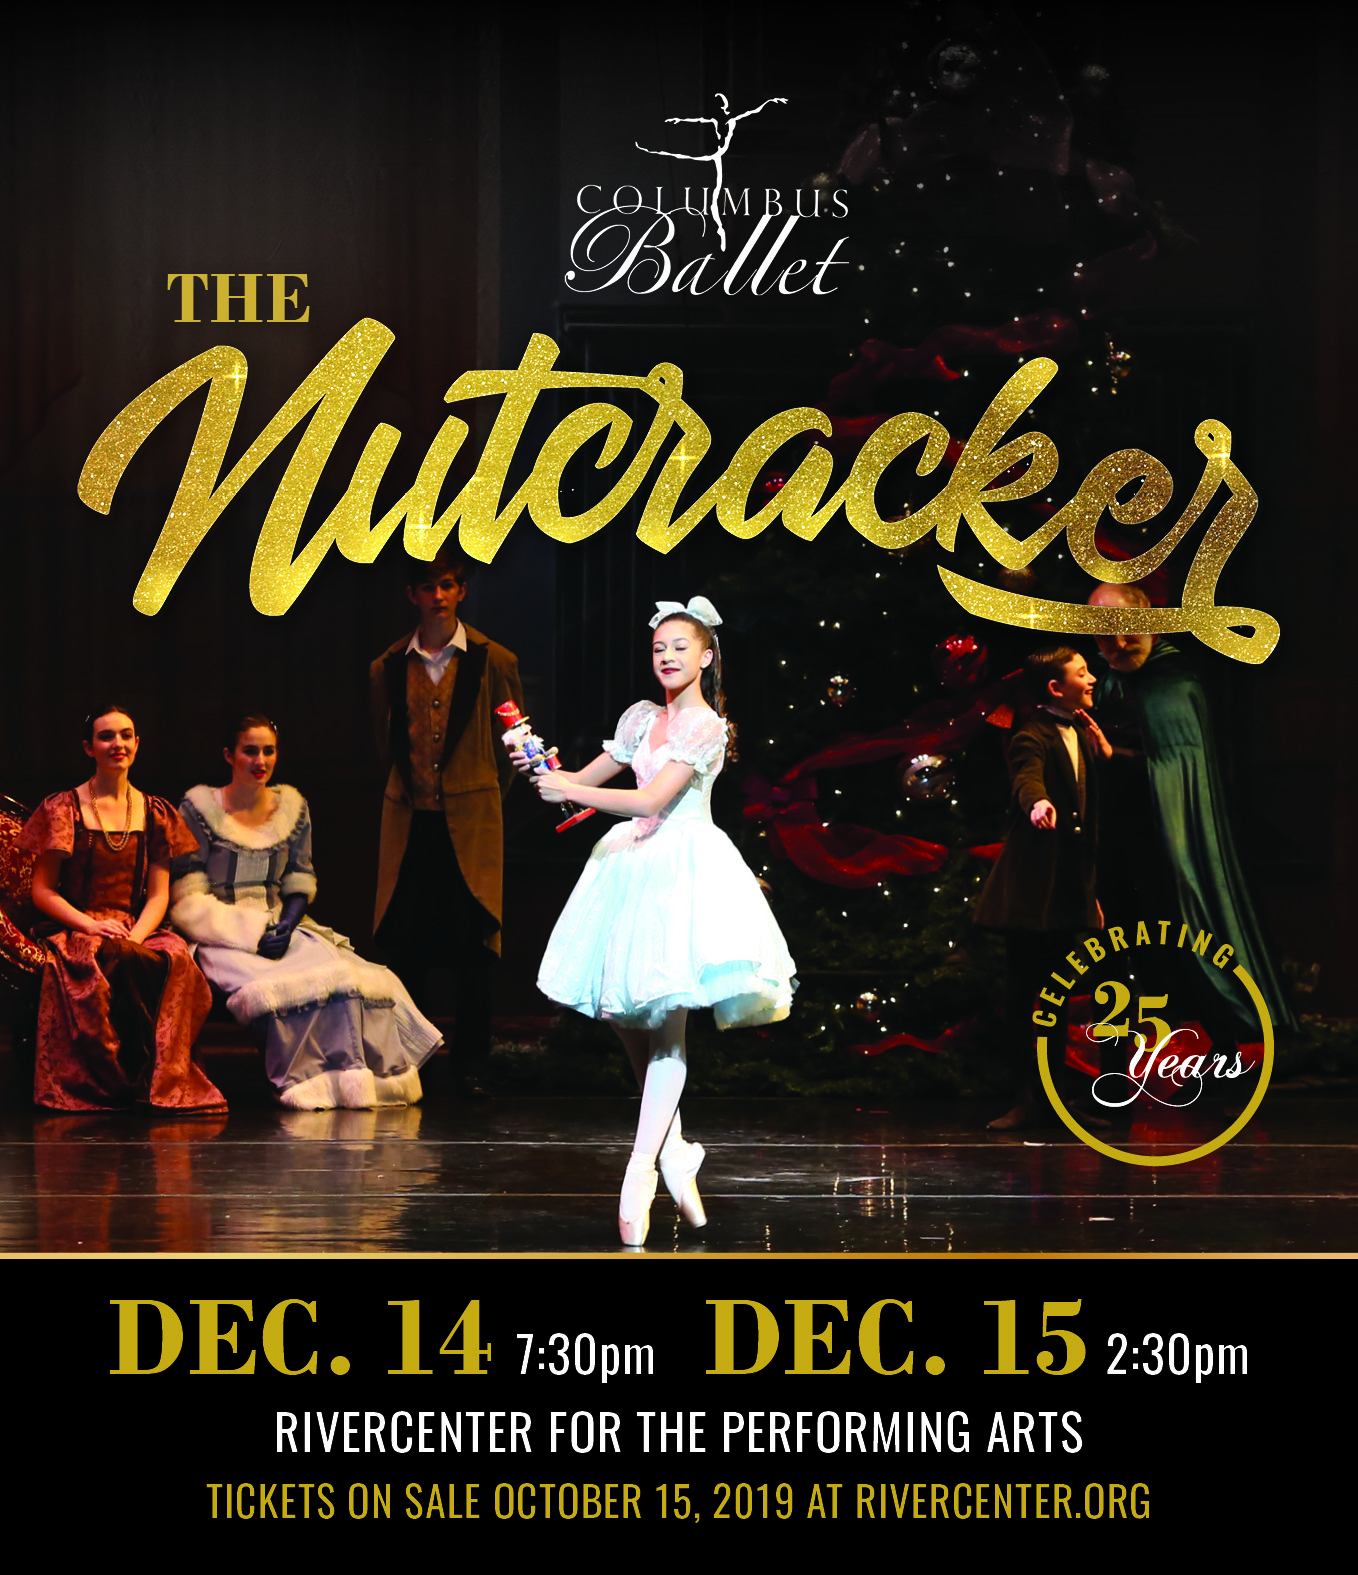 The Columbus Ballet Presents The Nutcracker